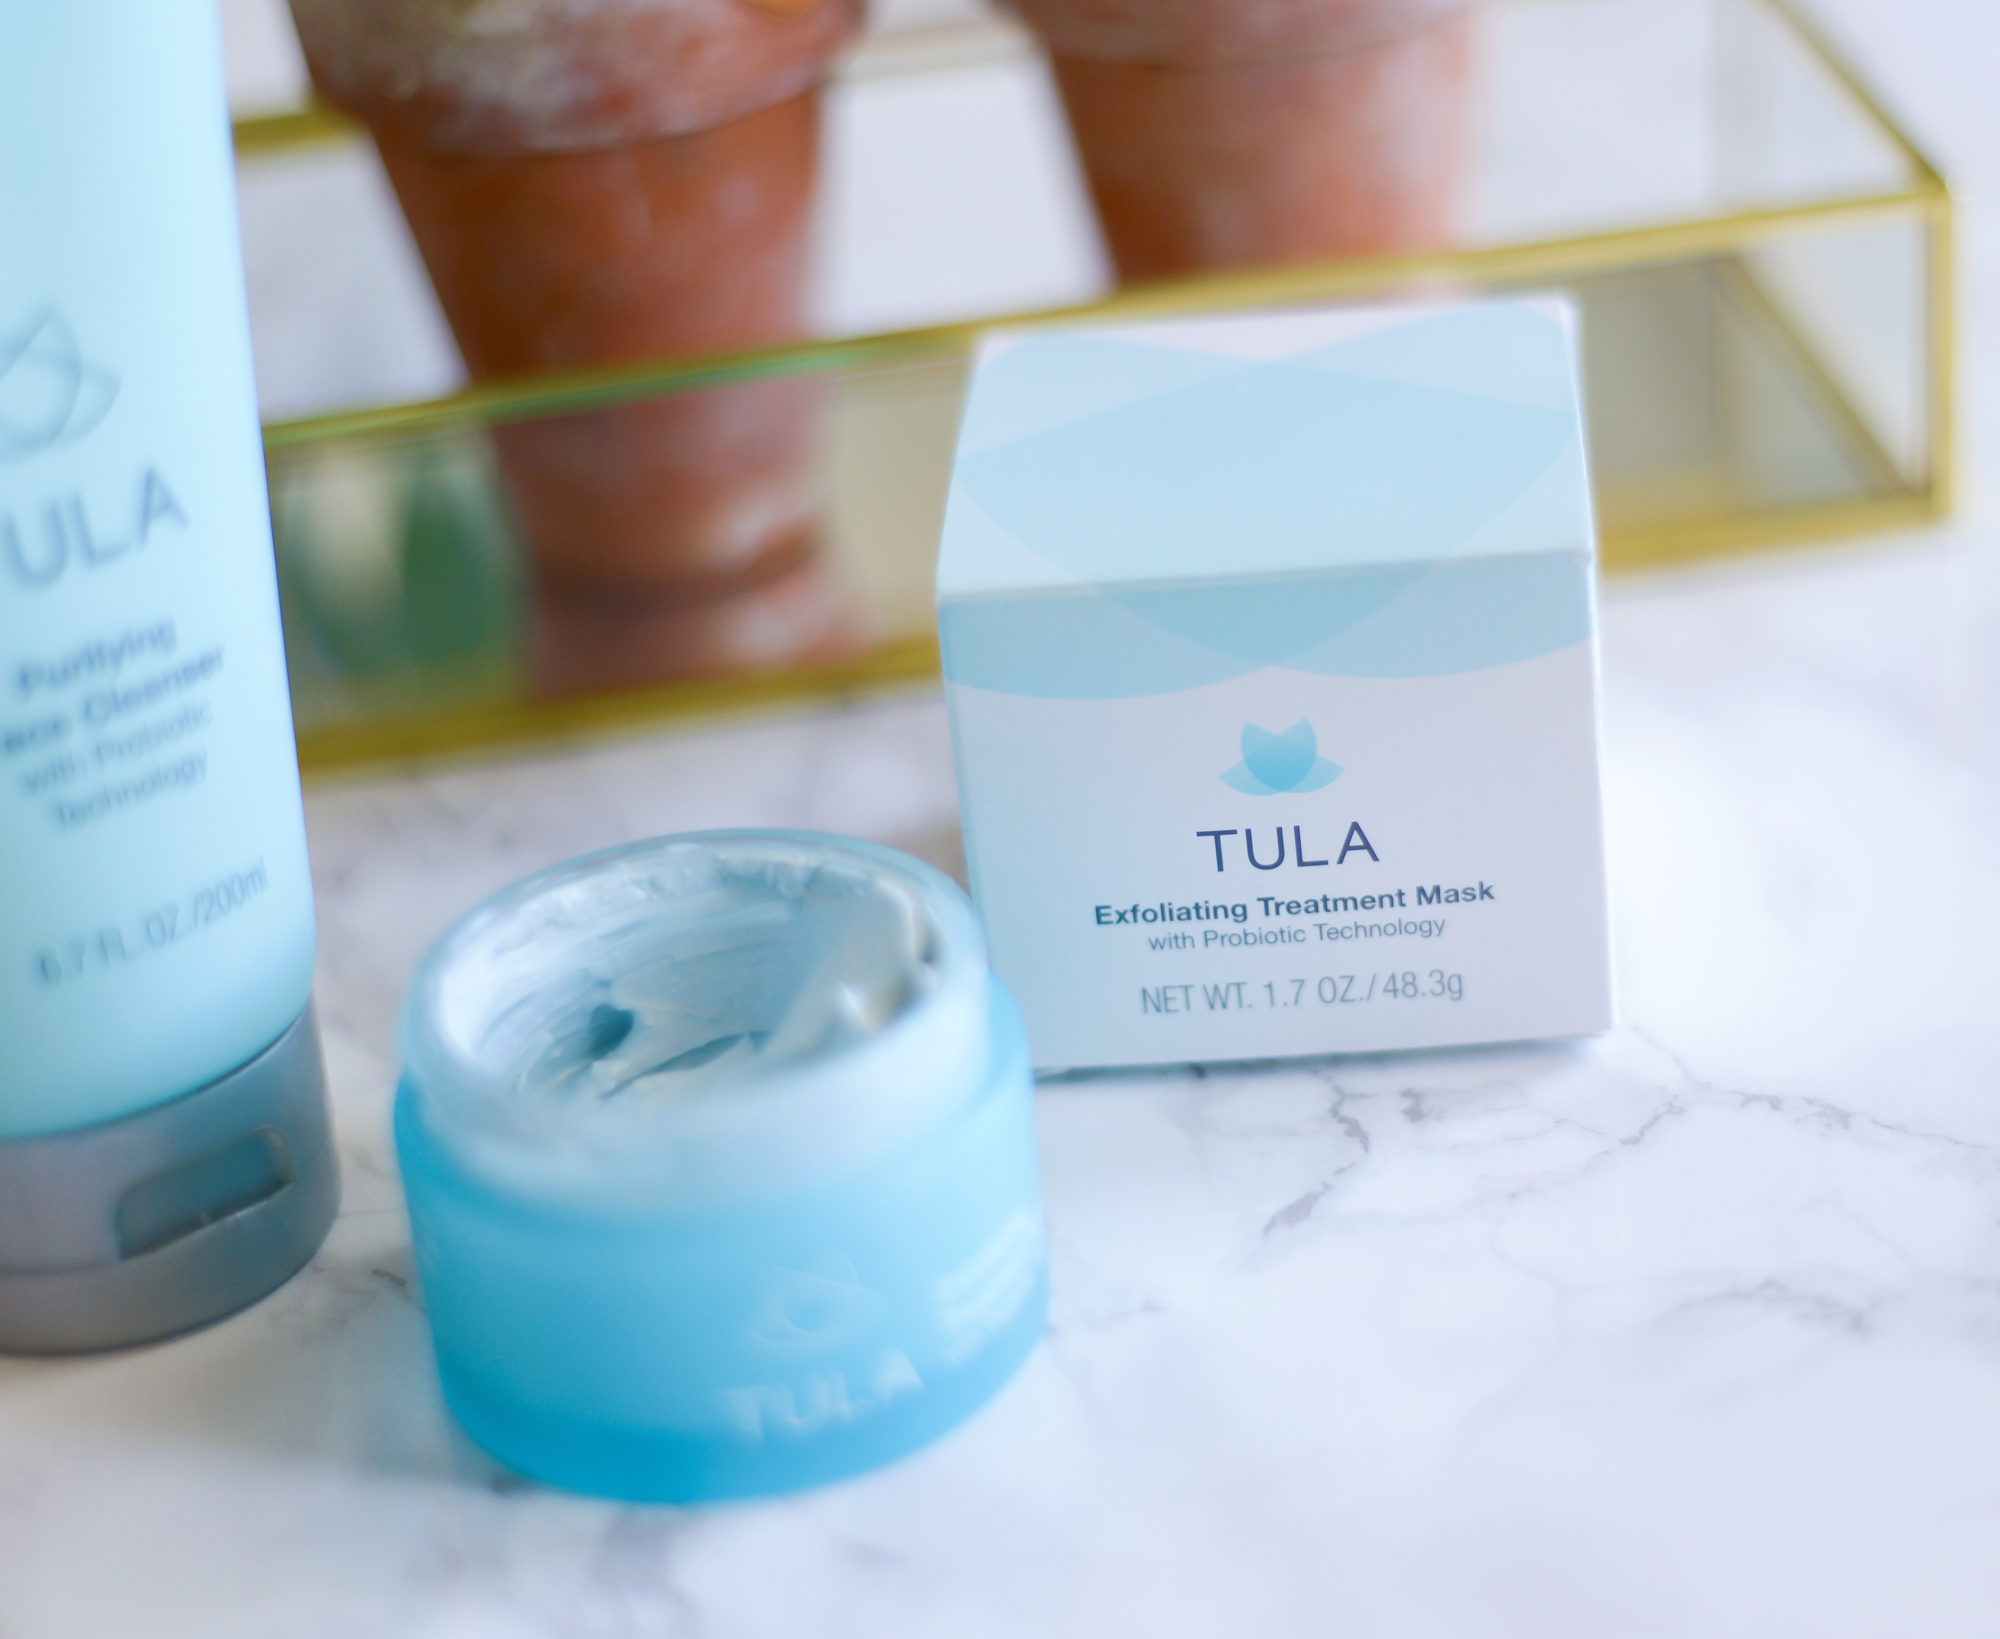 TULA Skin Care {The Chic Blonde}